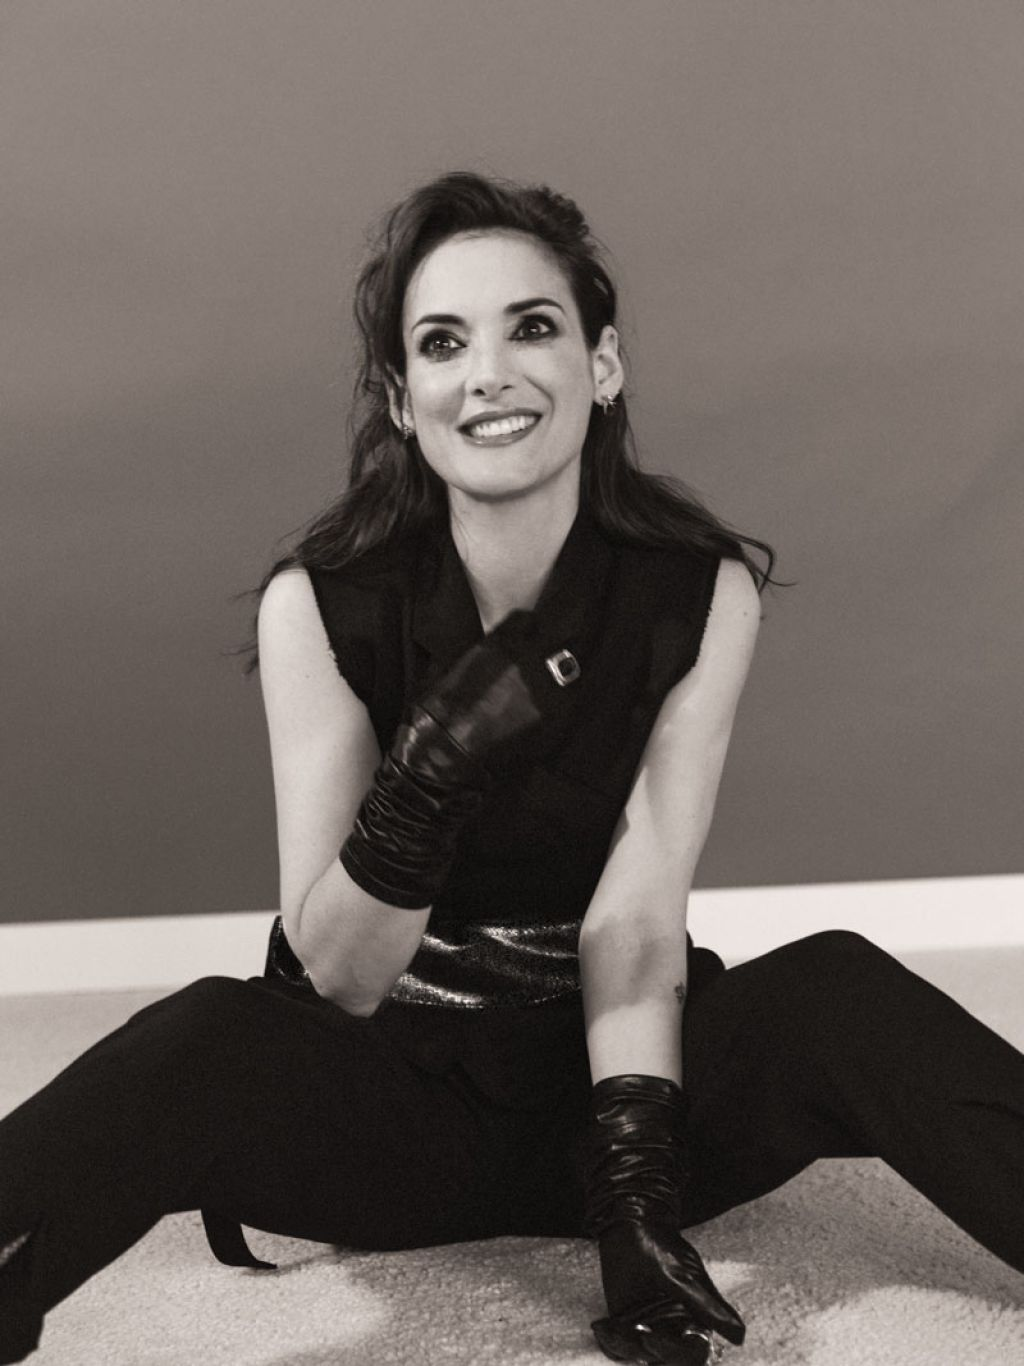 winona ryder - photo #48